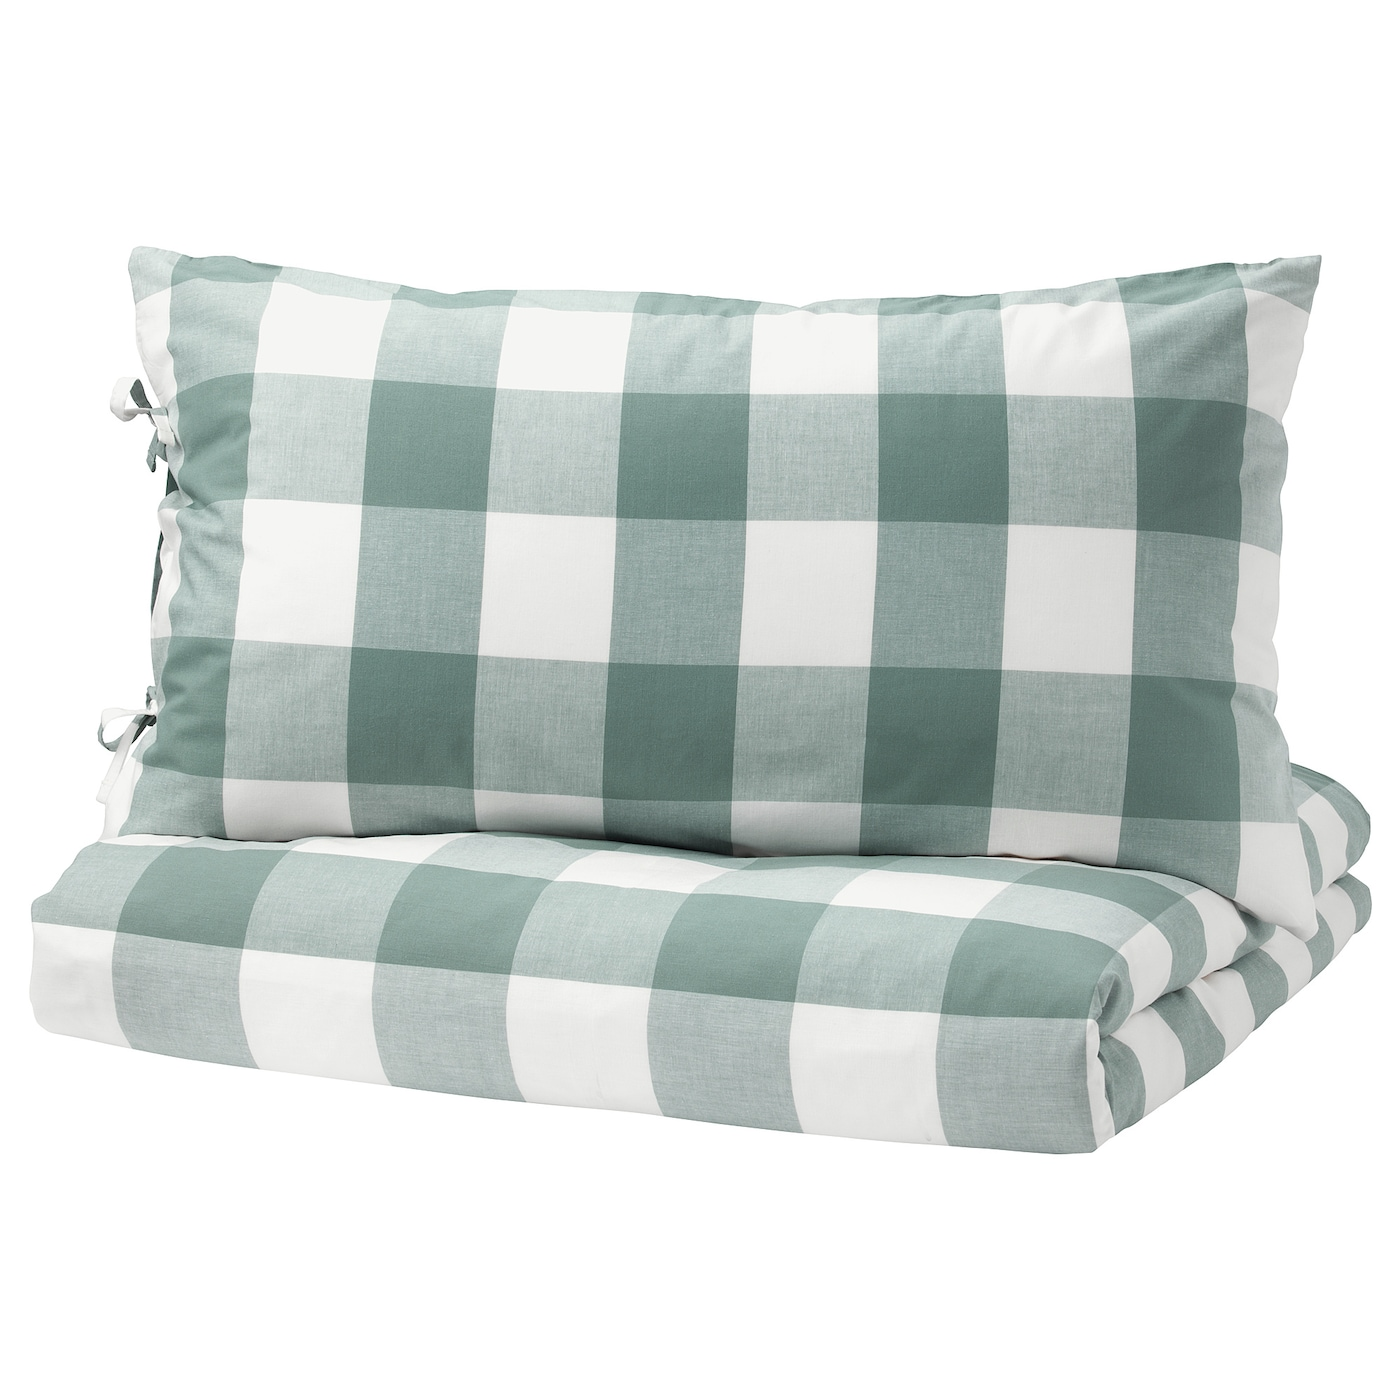 IKEA EMMIE RUTA quilt cover and pillowcase Decorative ribbons keep the quilt in place.